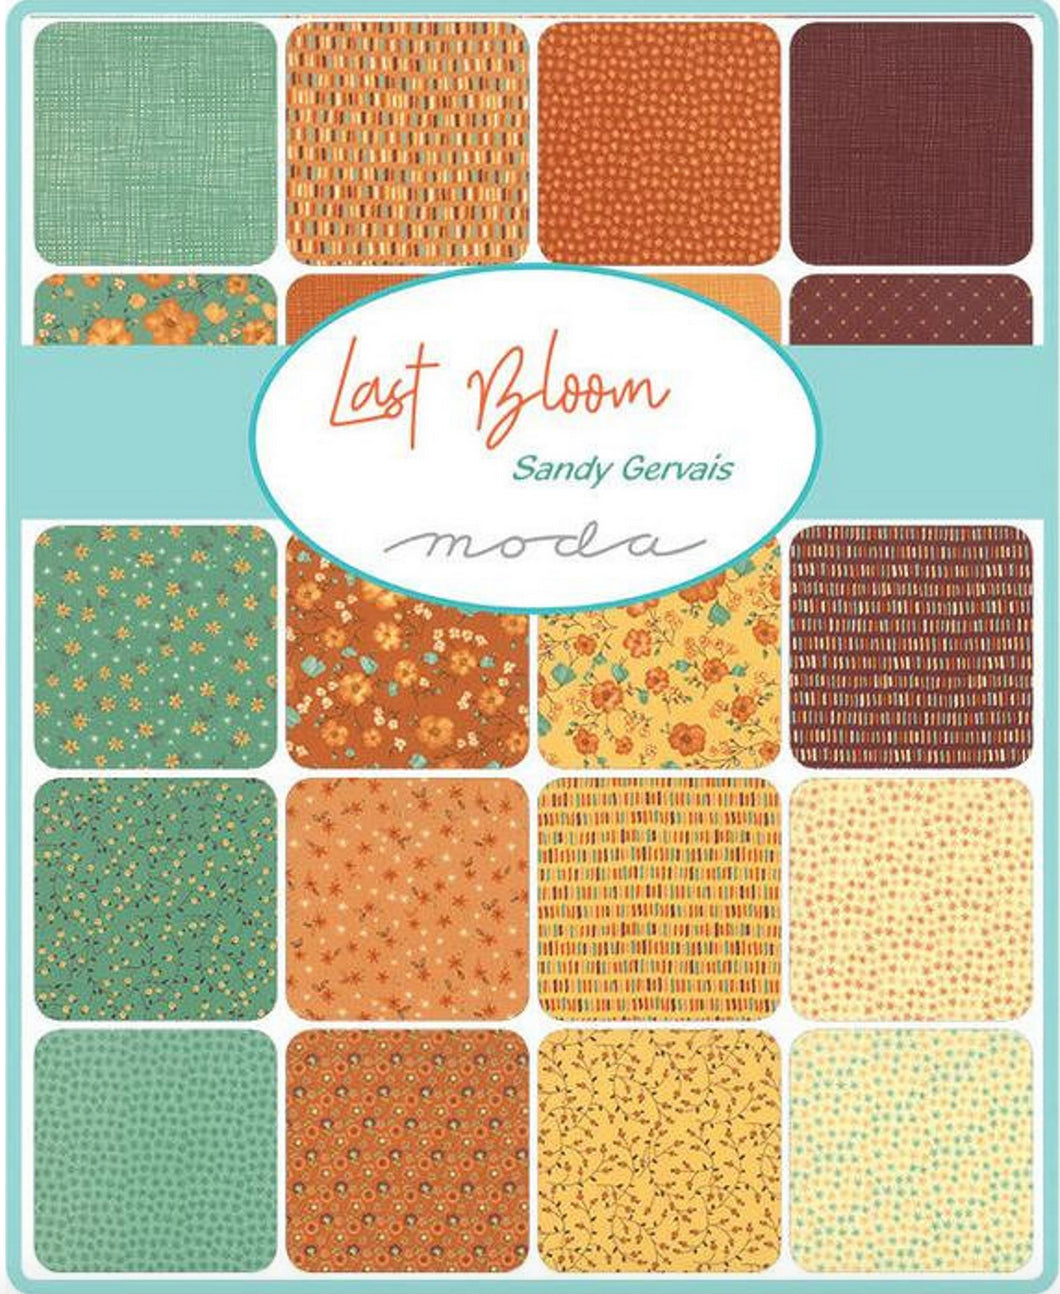 Last Bloom Quilt Kit by Sandy Gervais for Moda Fabrics - free pattern included! - Fabric and Frills